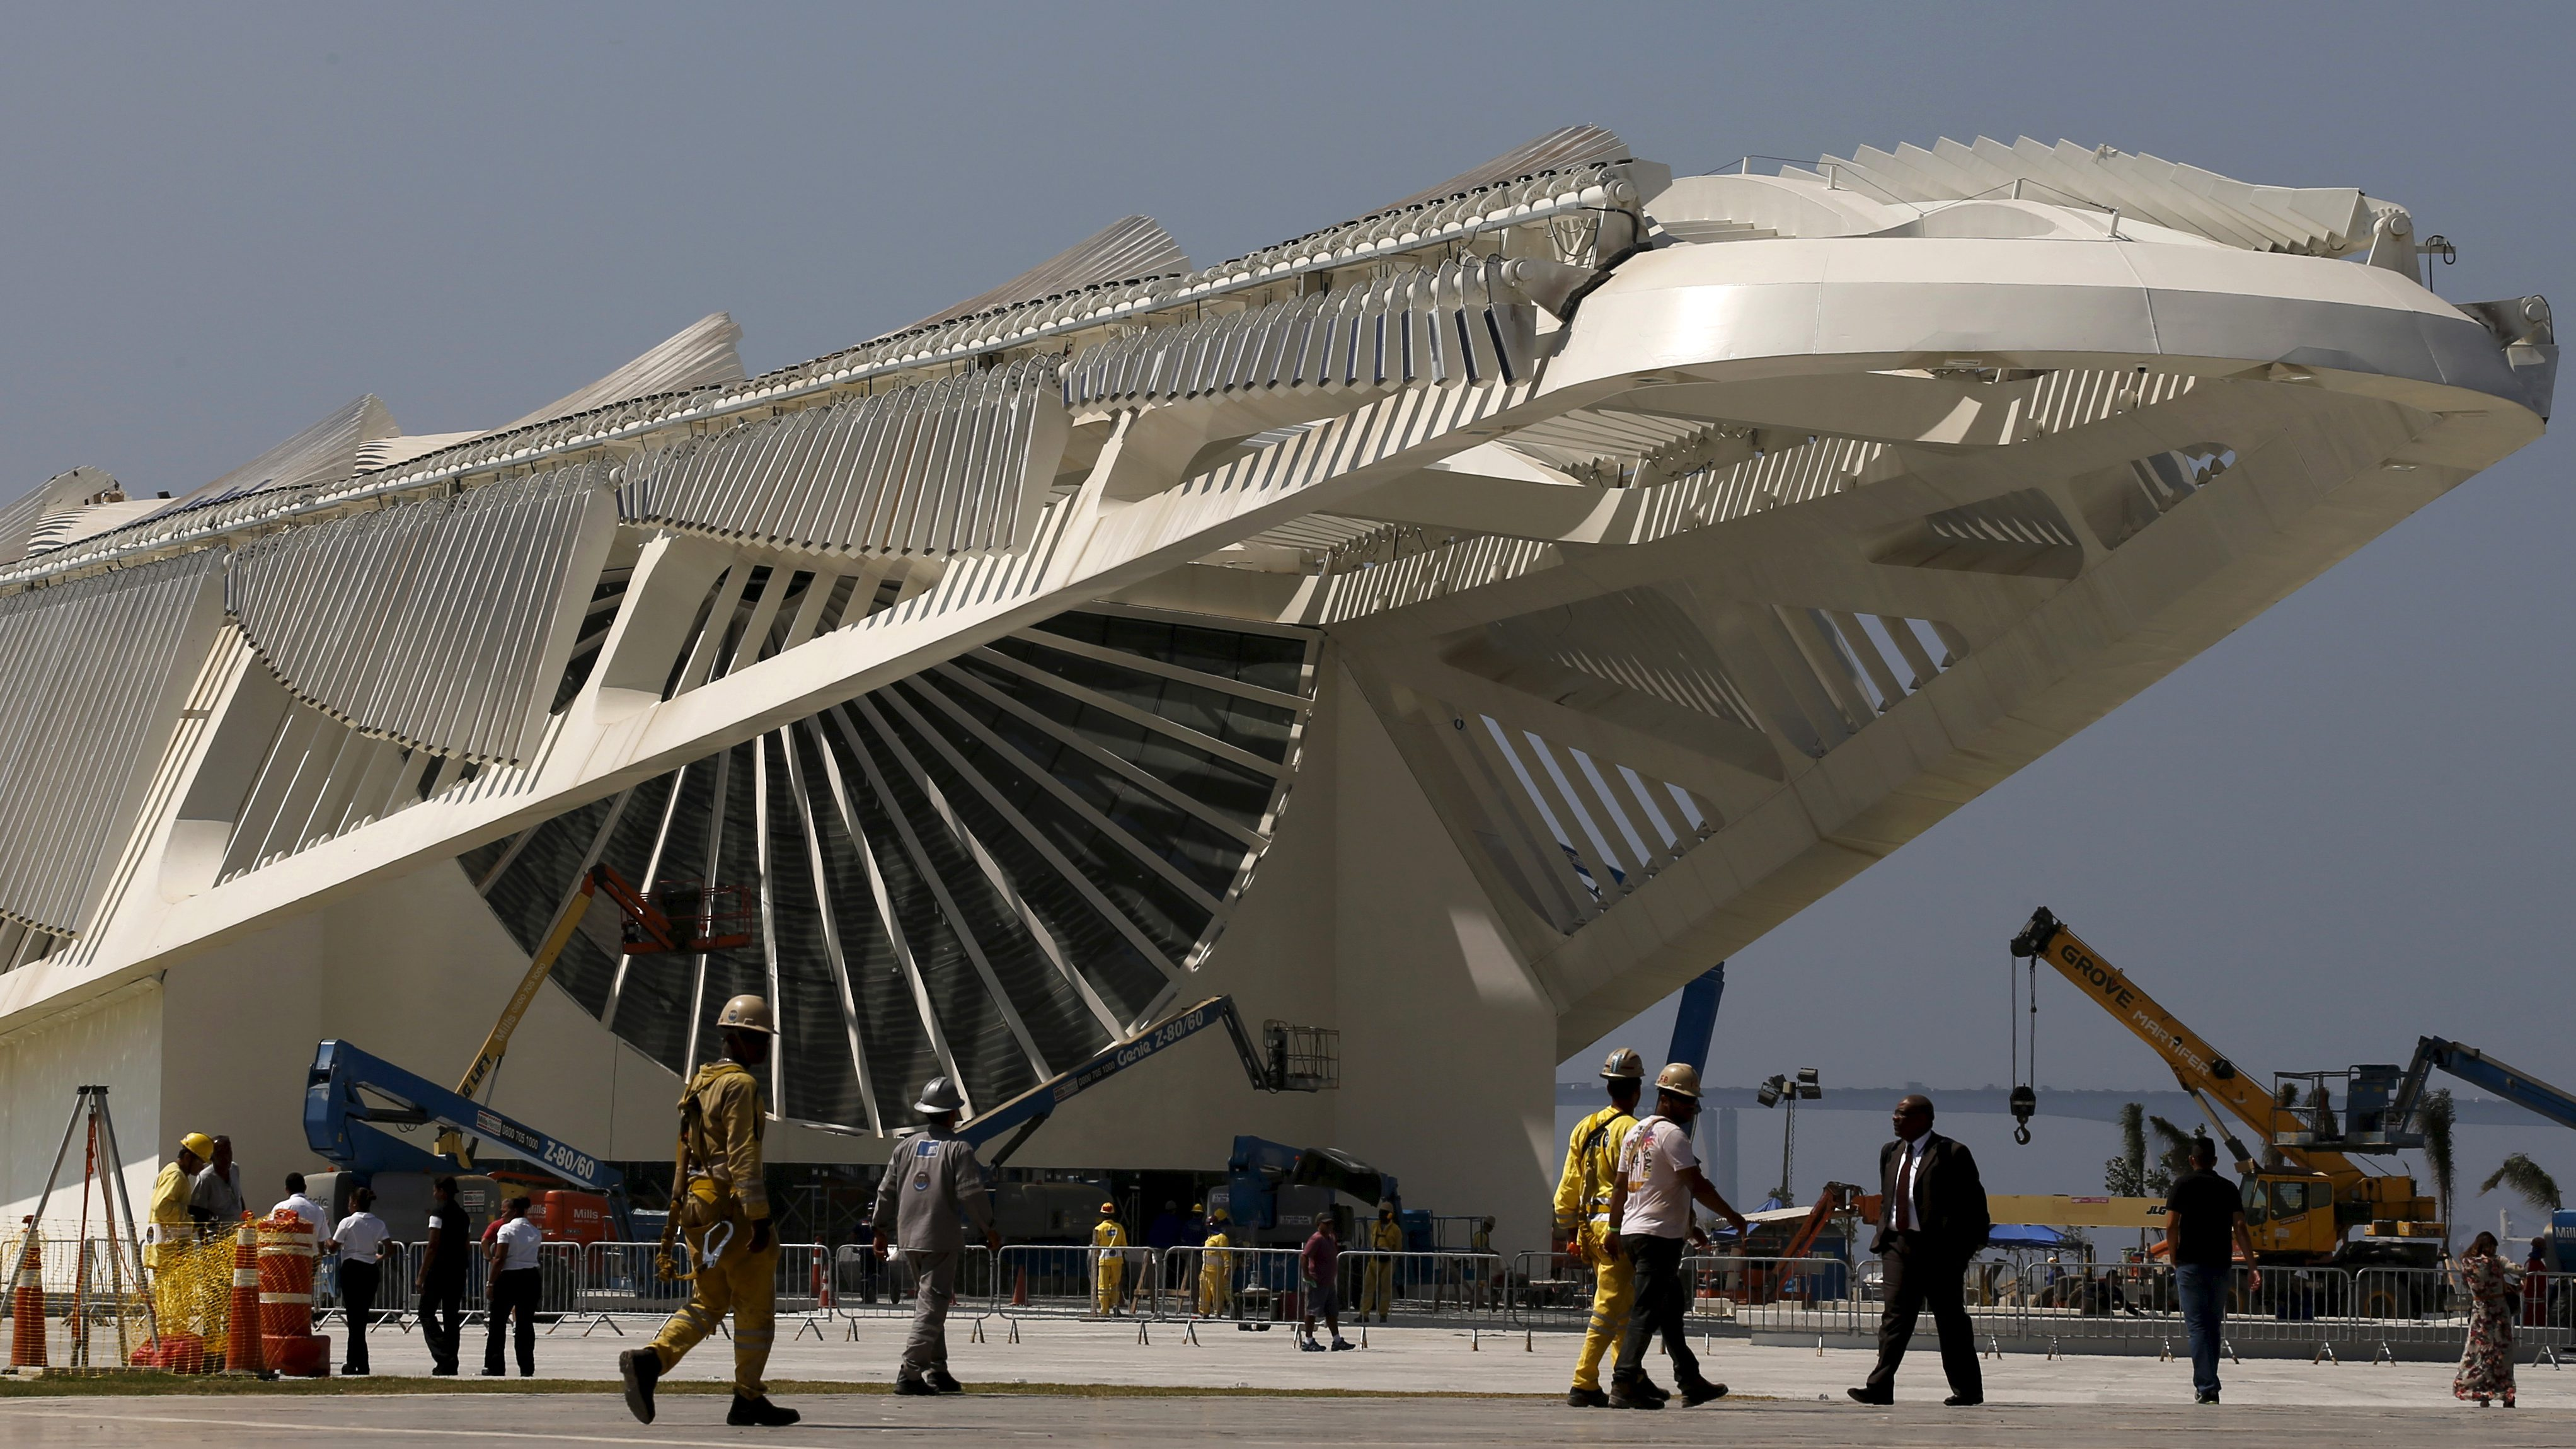 Workers walk in front of the Museu do Amanha (Museum of Tomorrow), which is under construction, at the port zone in Rio de Janeiro, Brazil, September 23, 2015. The highway has been torn down, tunnels dug, and the walkways and gardens laid in Rio de Janeiro's new business district. But the dozens of office towers needed to make the 8 billion real ($2 billion) renovation viable are missing. The transformation of a derelict port district before the 2016 Olympic Games is a flagship development that wasn't supposed to cost Brazilian taxpayers a thing. Less than a year before the Olympics, however, a real-estate meltdown in Rio has killed appetite for new skyscrapers and left a public fund - which paid upfront for infrastructure betting it could profit by selling building rights - shouldering the burden of the 8 billion real cost. Picture taken on September 23, 2015. REUTERS/Sergio Moraes - RTS2FPL